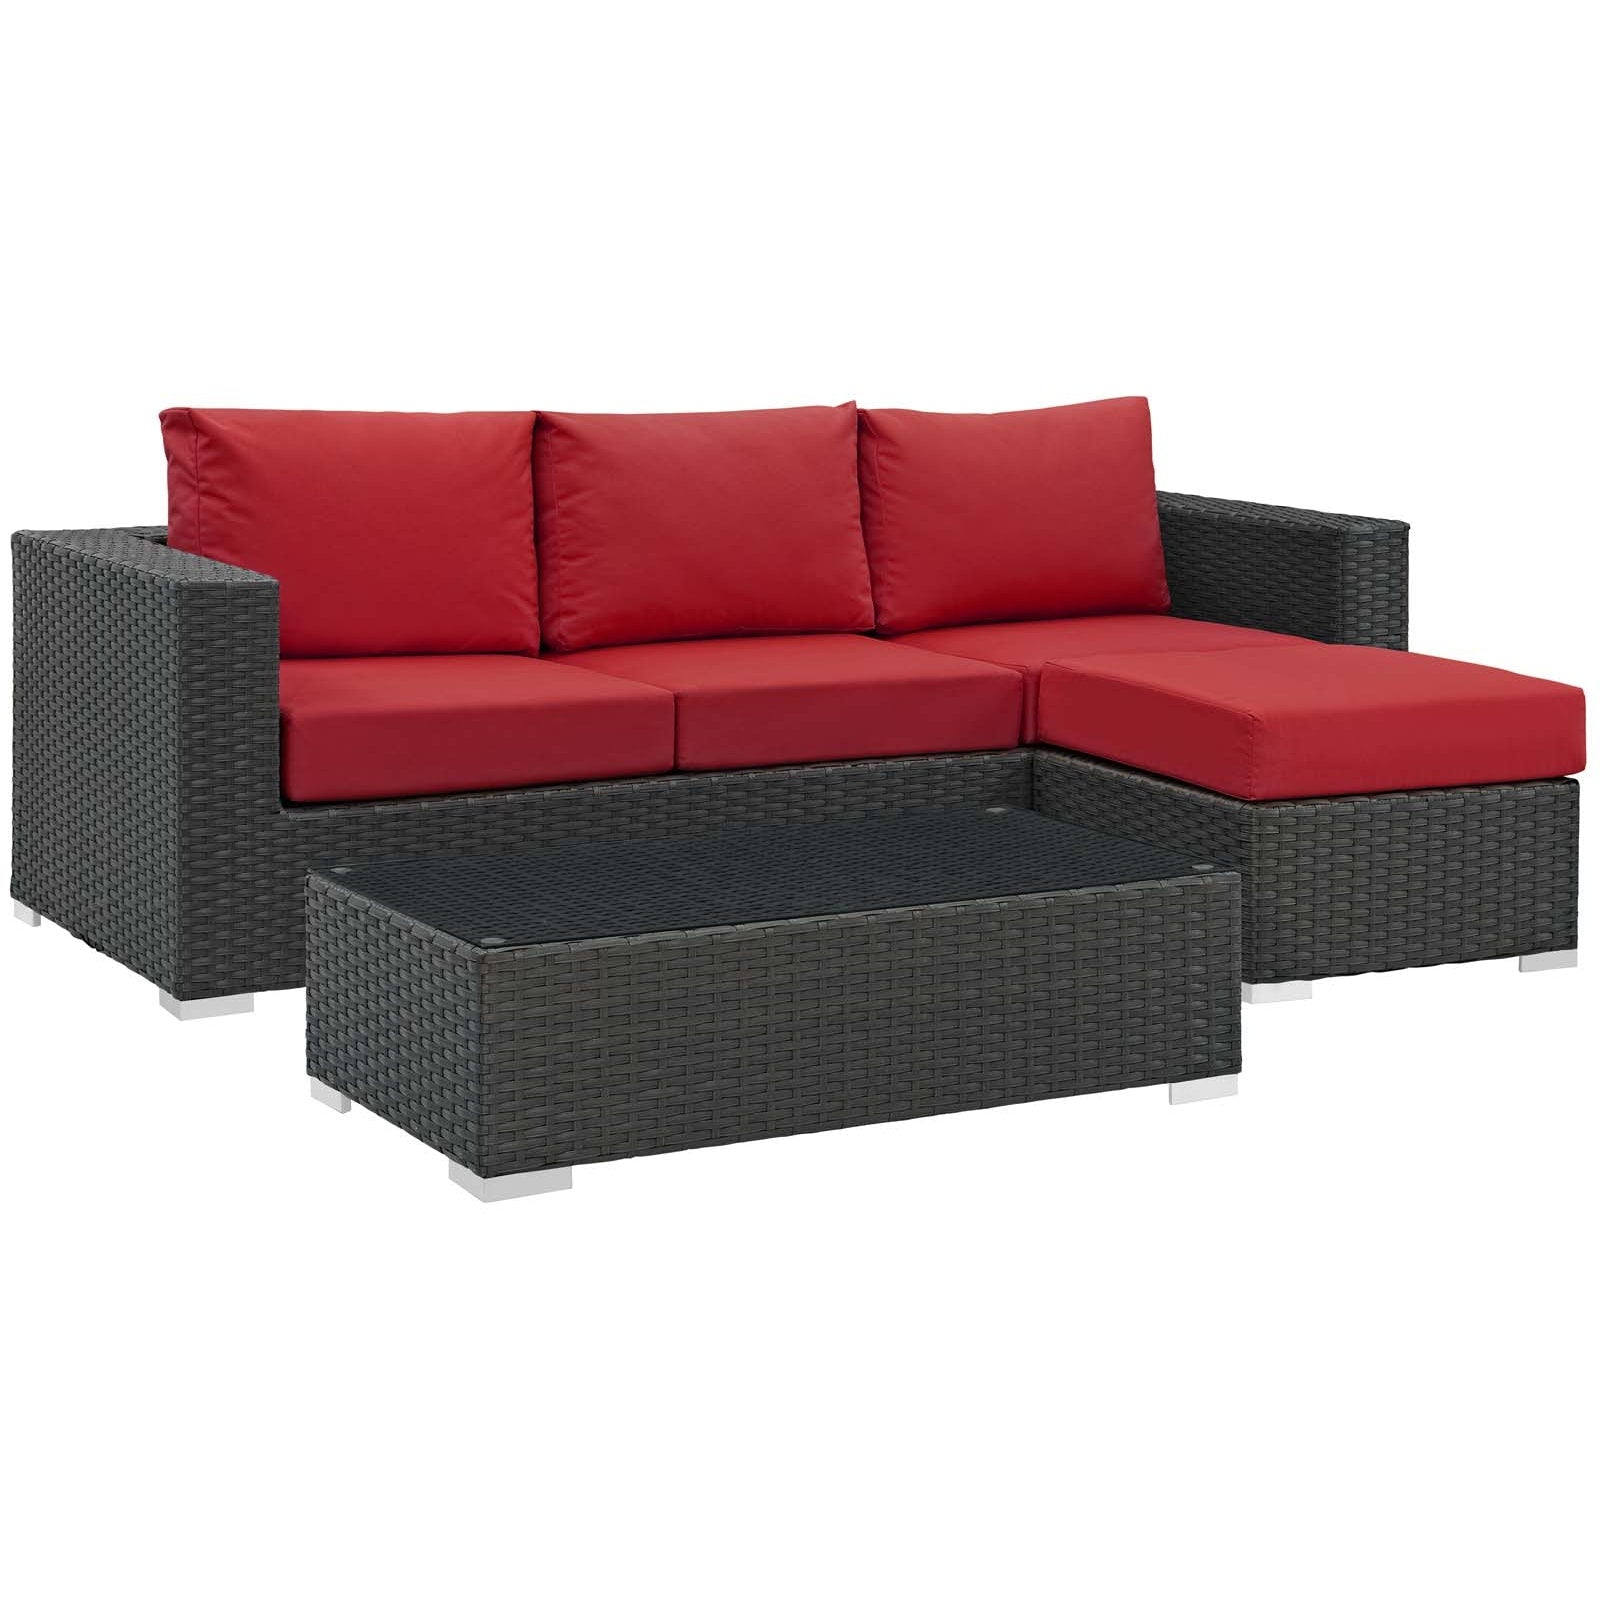 Sojourn 3 Piece Outdoor Patio Sunbrella® Sectional Set - Canvas Red